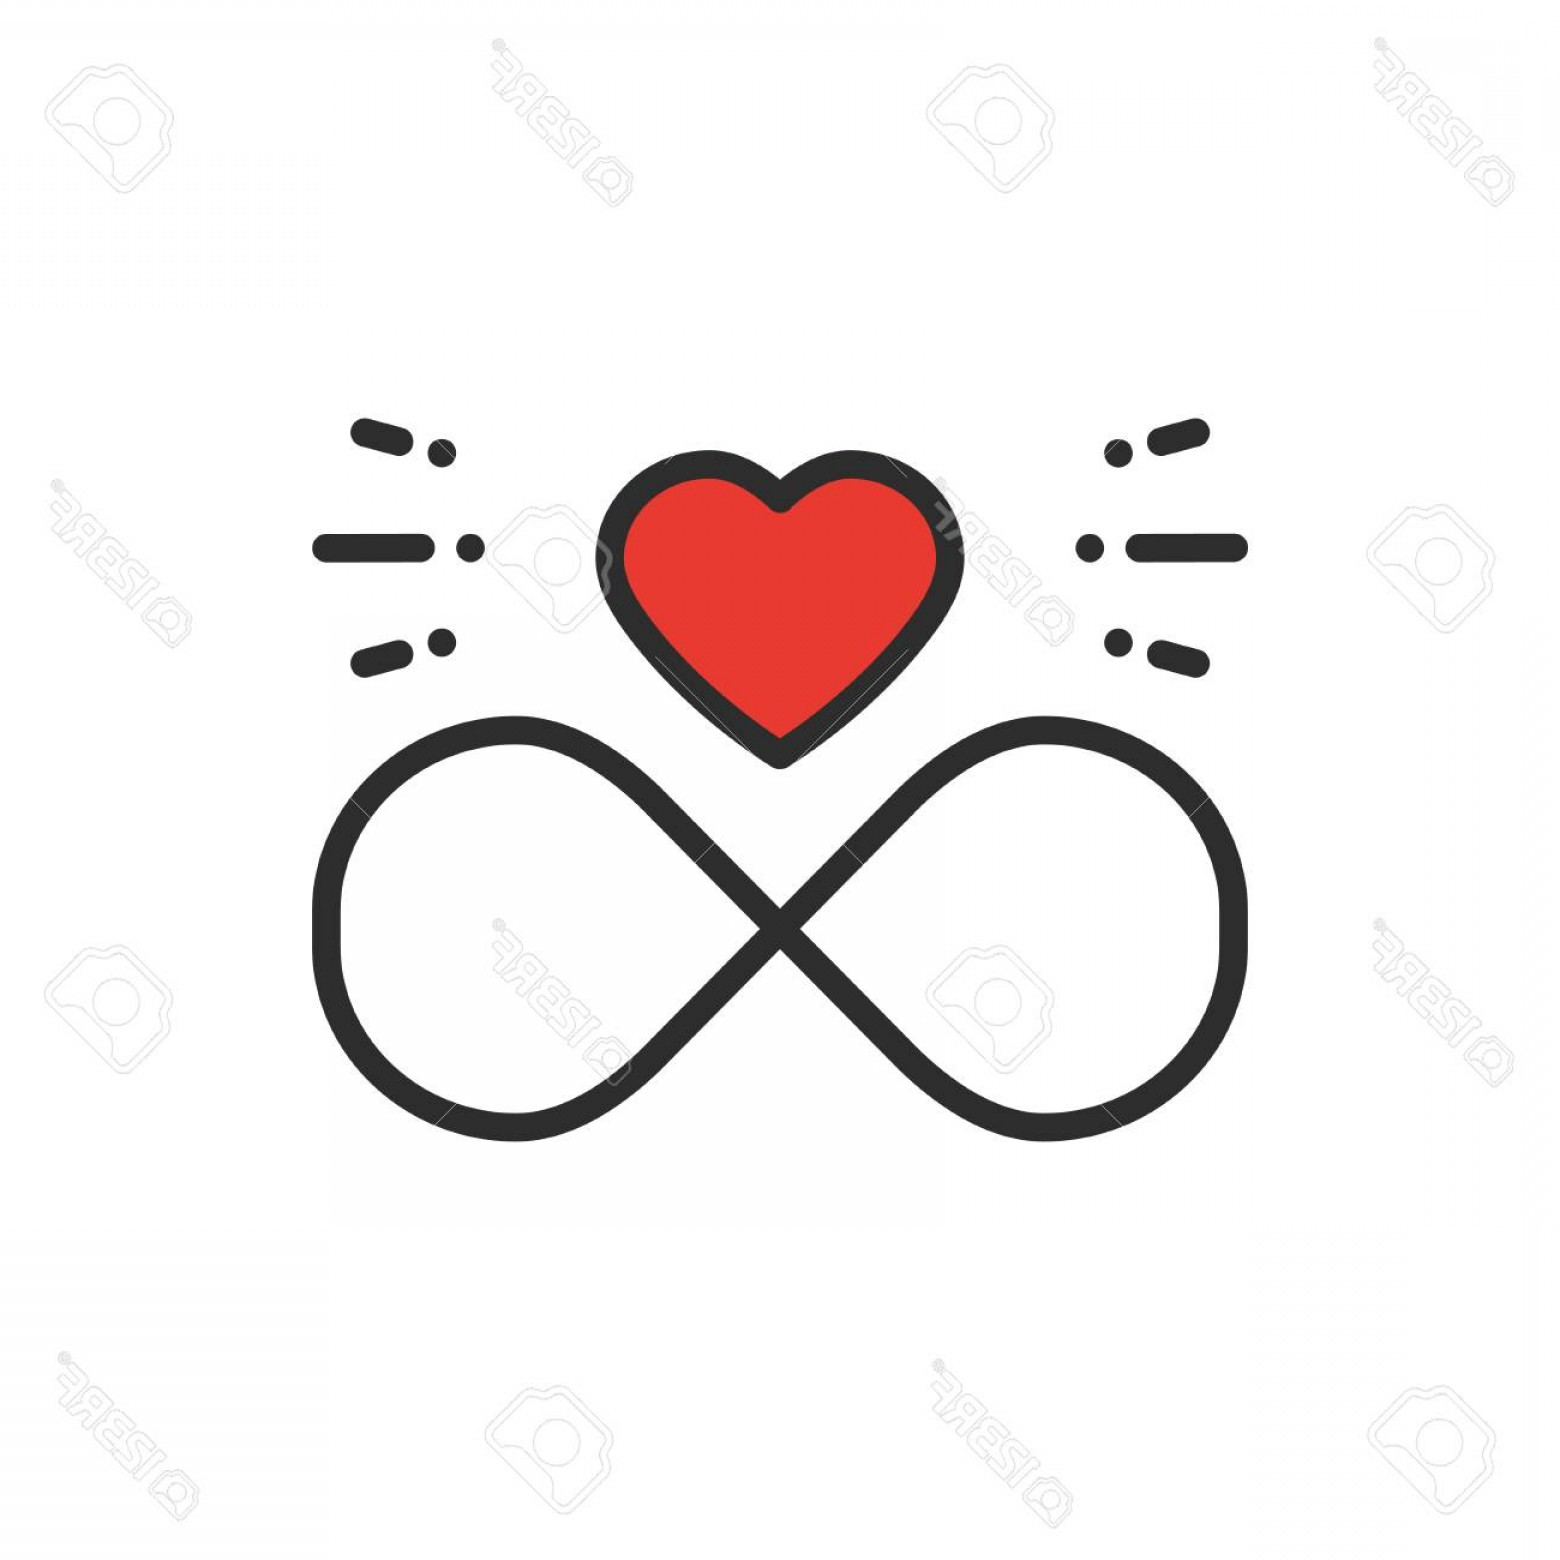 Infinity Heart Tattoo Vector: Photostock Vector Love Line Infinite Heart Icon Happy Valentine Day Sign And Symbol Love Couple Relationship Dating We